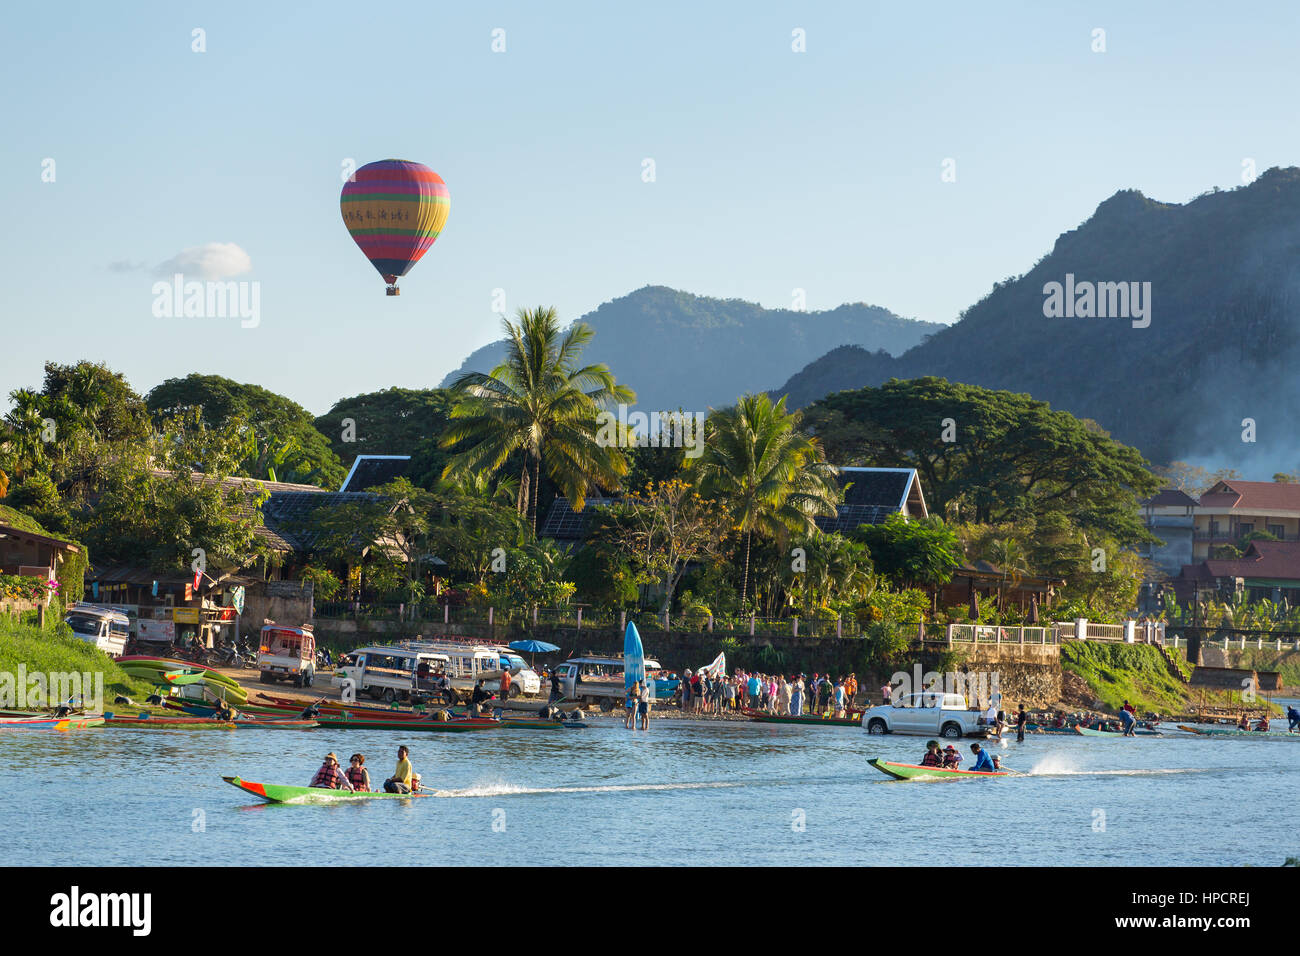 Vang Vieng, Laos - January 19, 2017: Unidentified tourists are riding  speedboats in Vang Vieng village with a hot - Stock Image